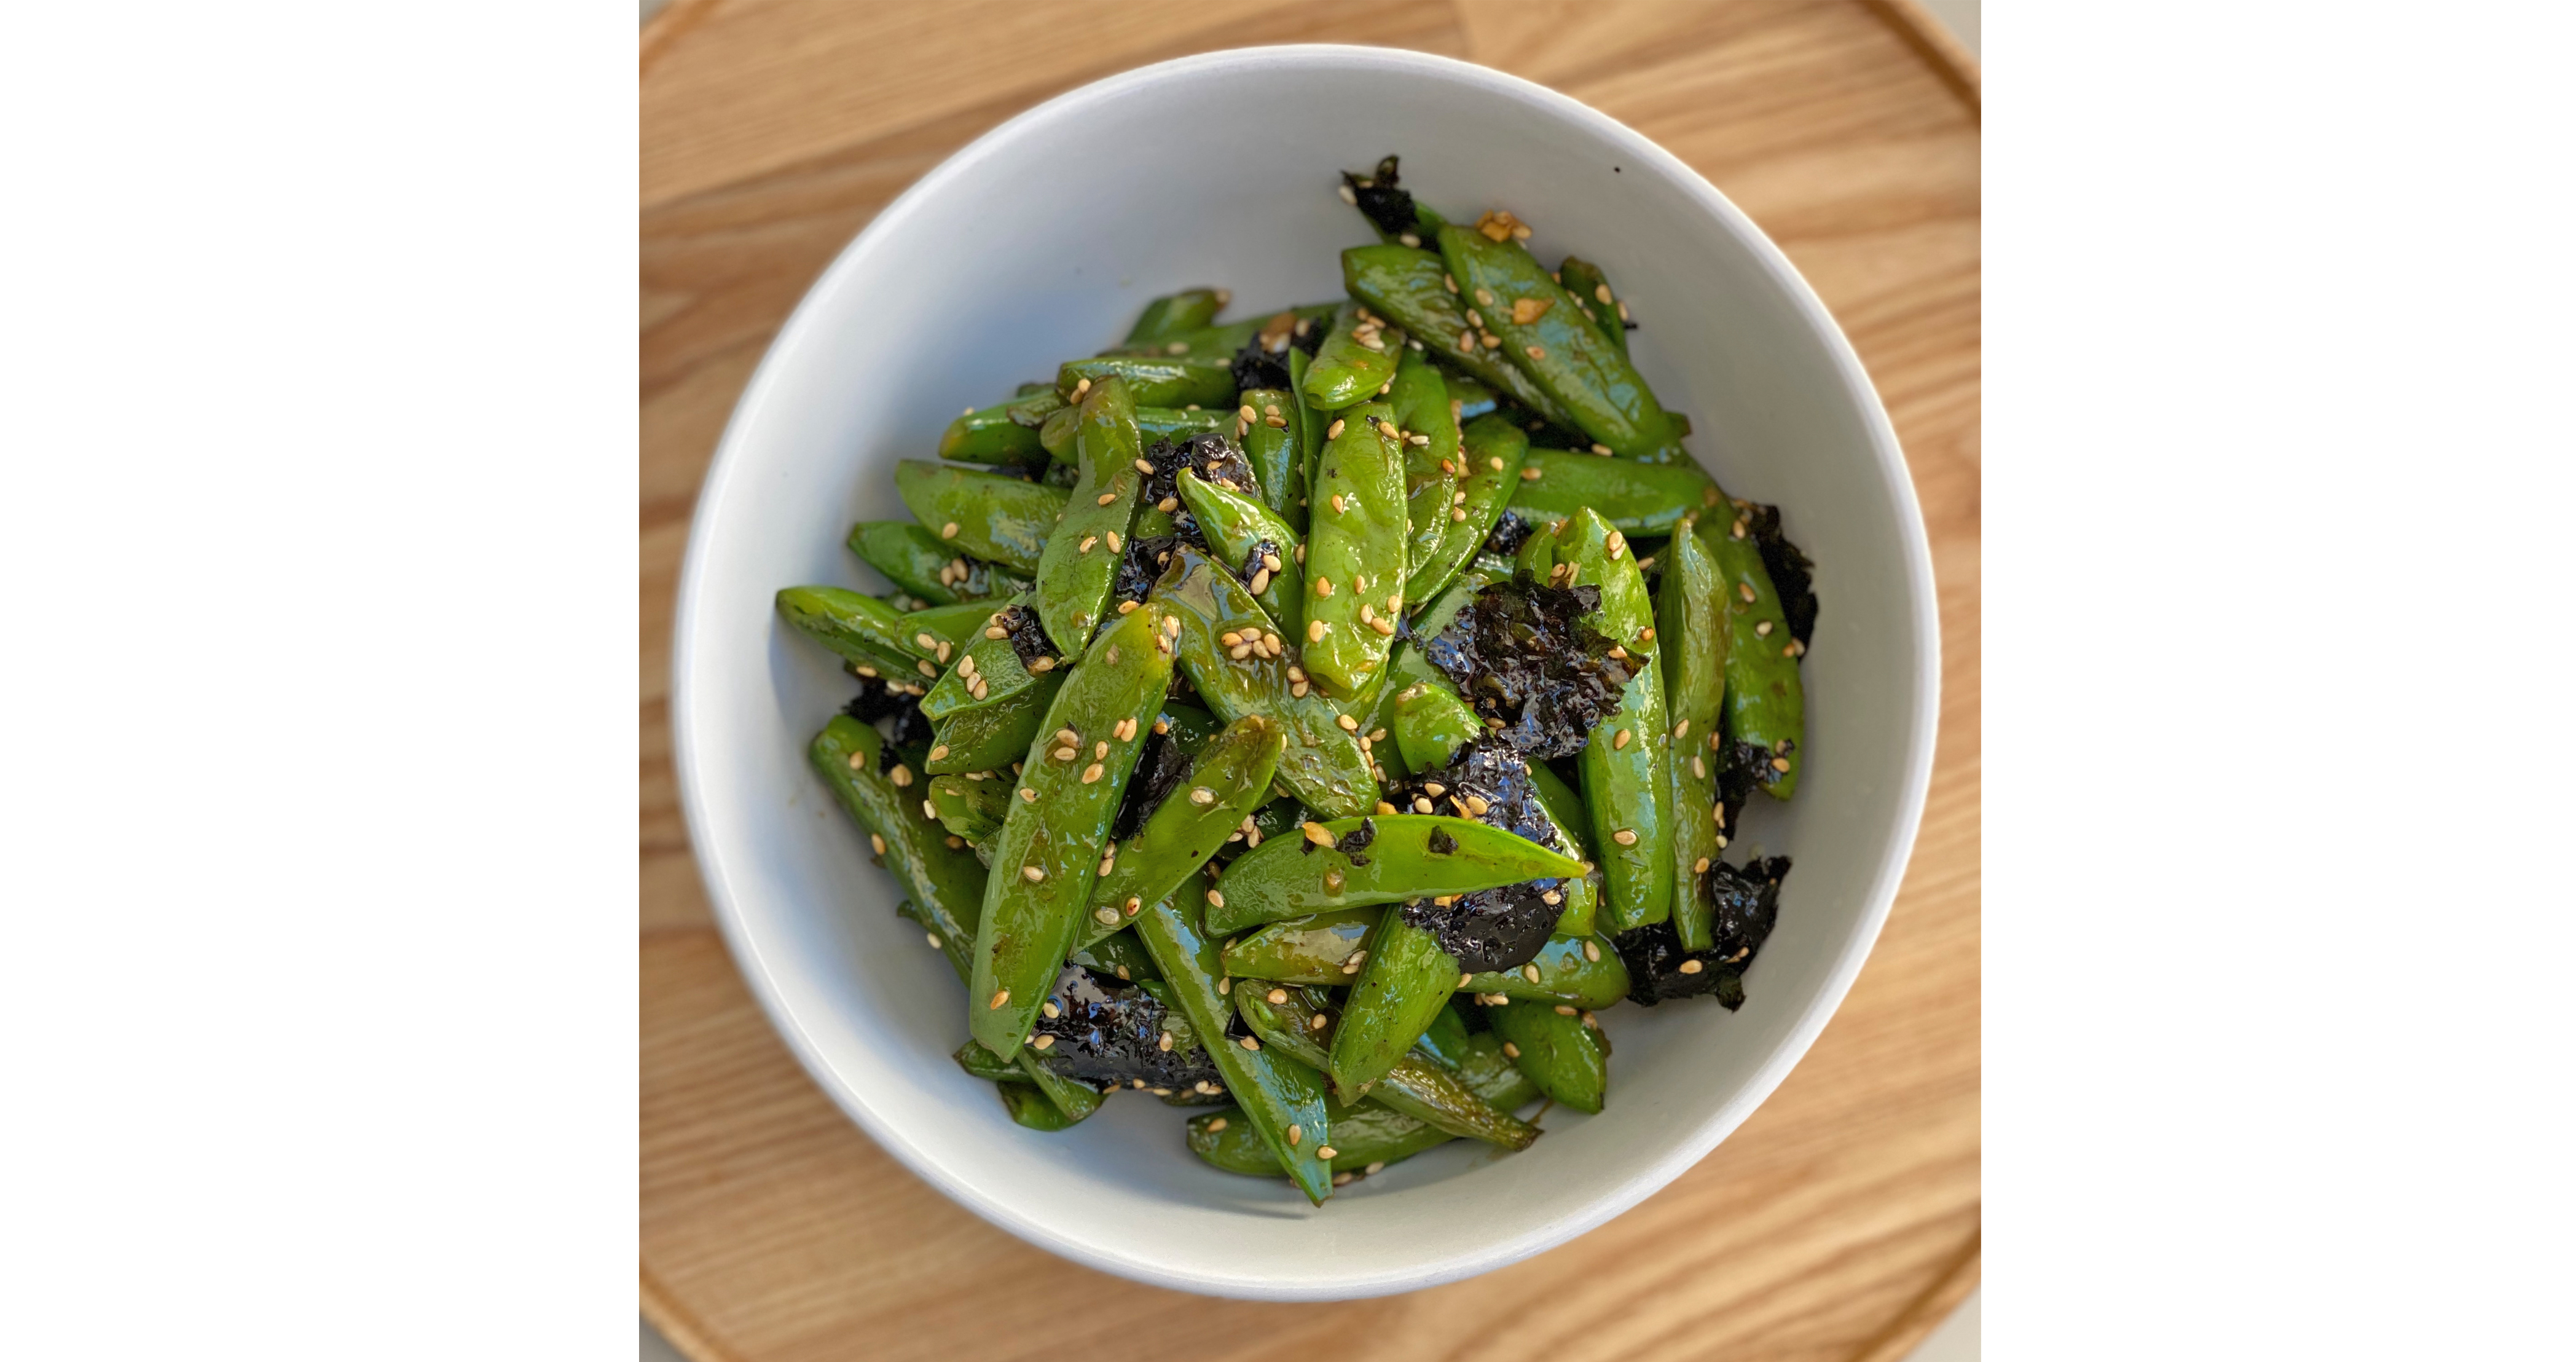 Blistered Snap Peas with Seaweed & Chili Flakes